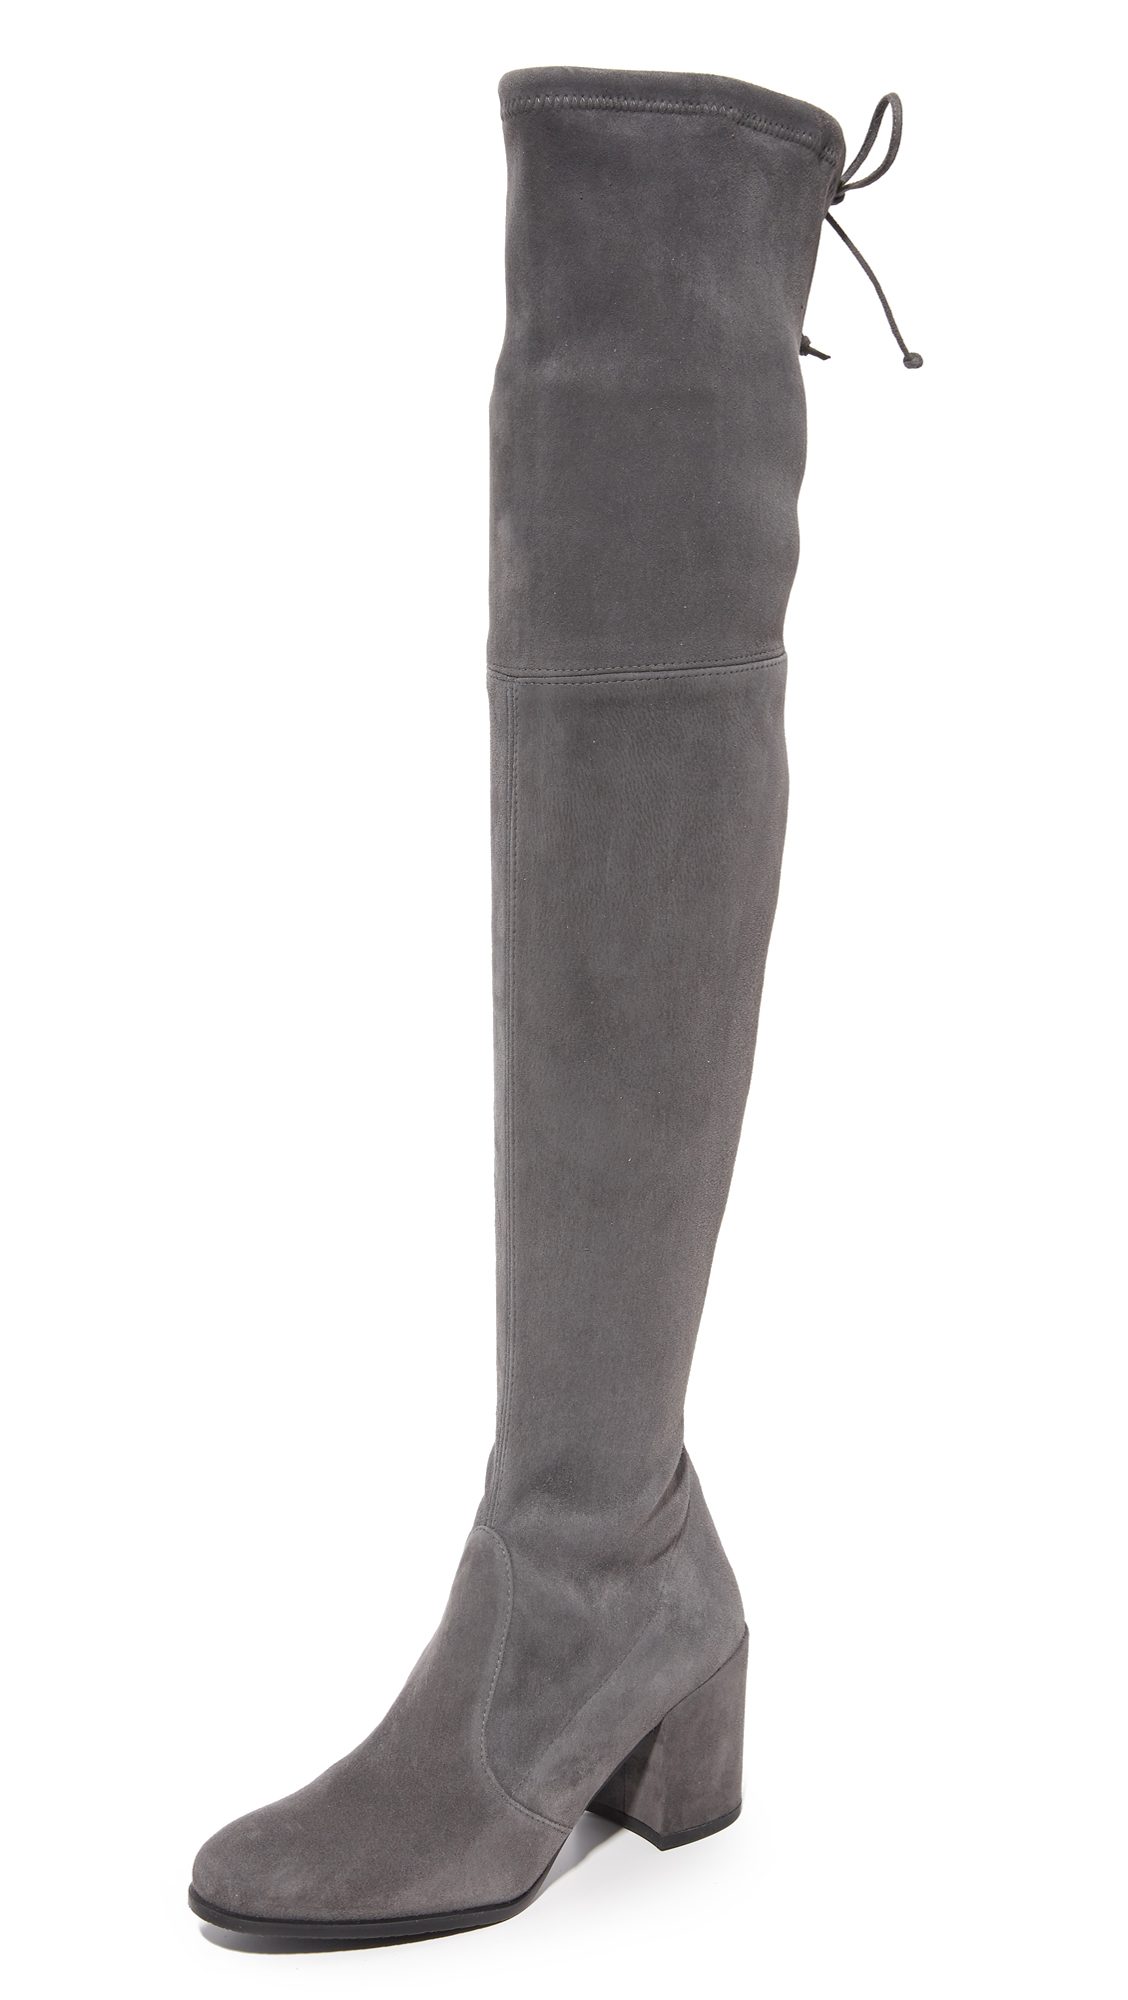 Stuart Weitzman Tieland Over the Knee Boots - Slate